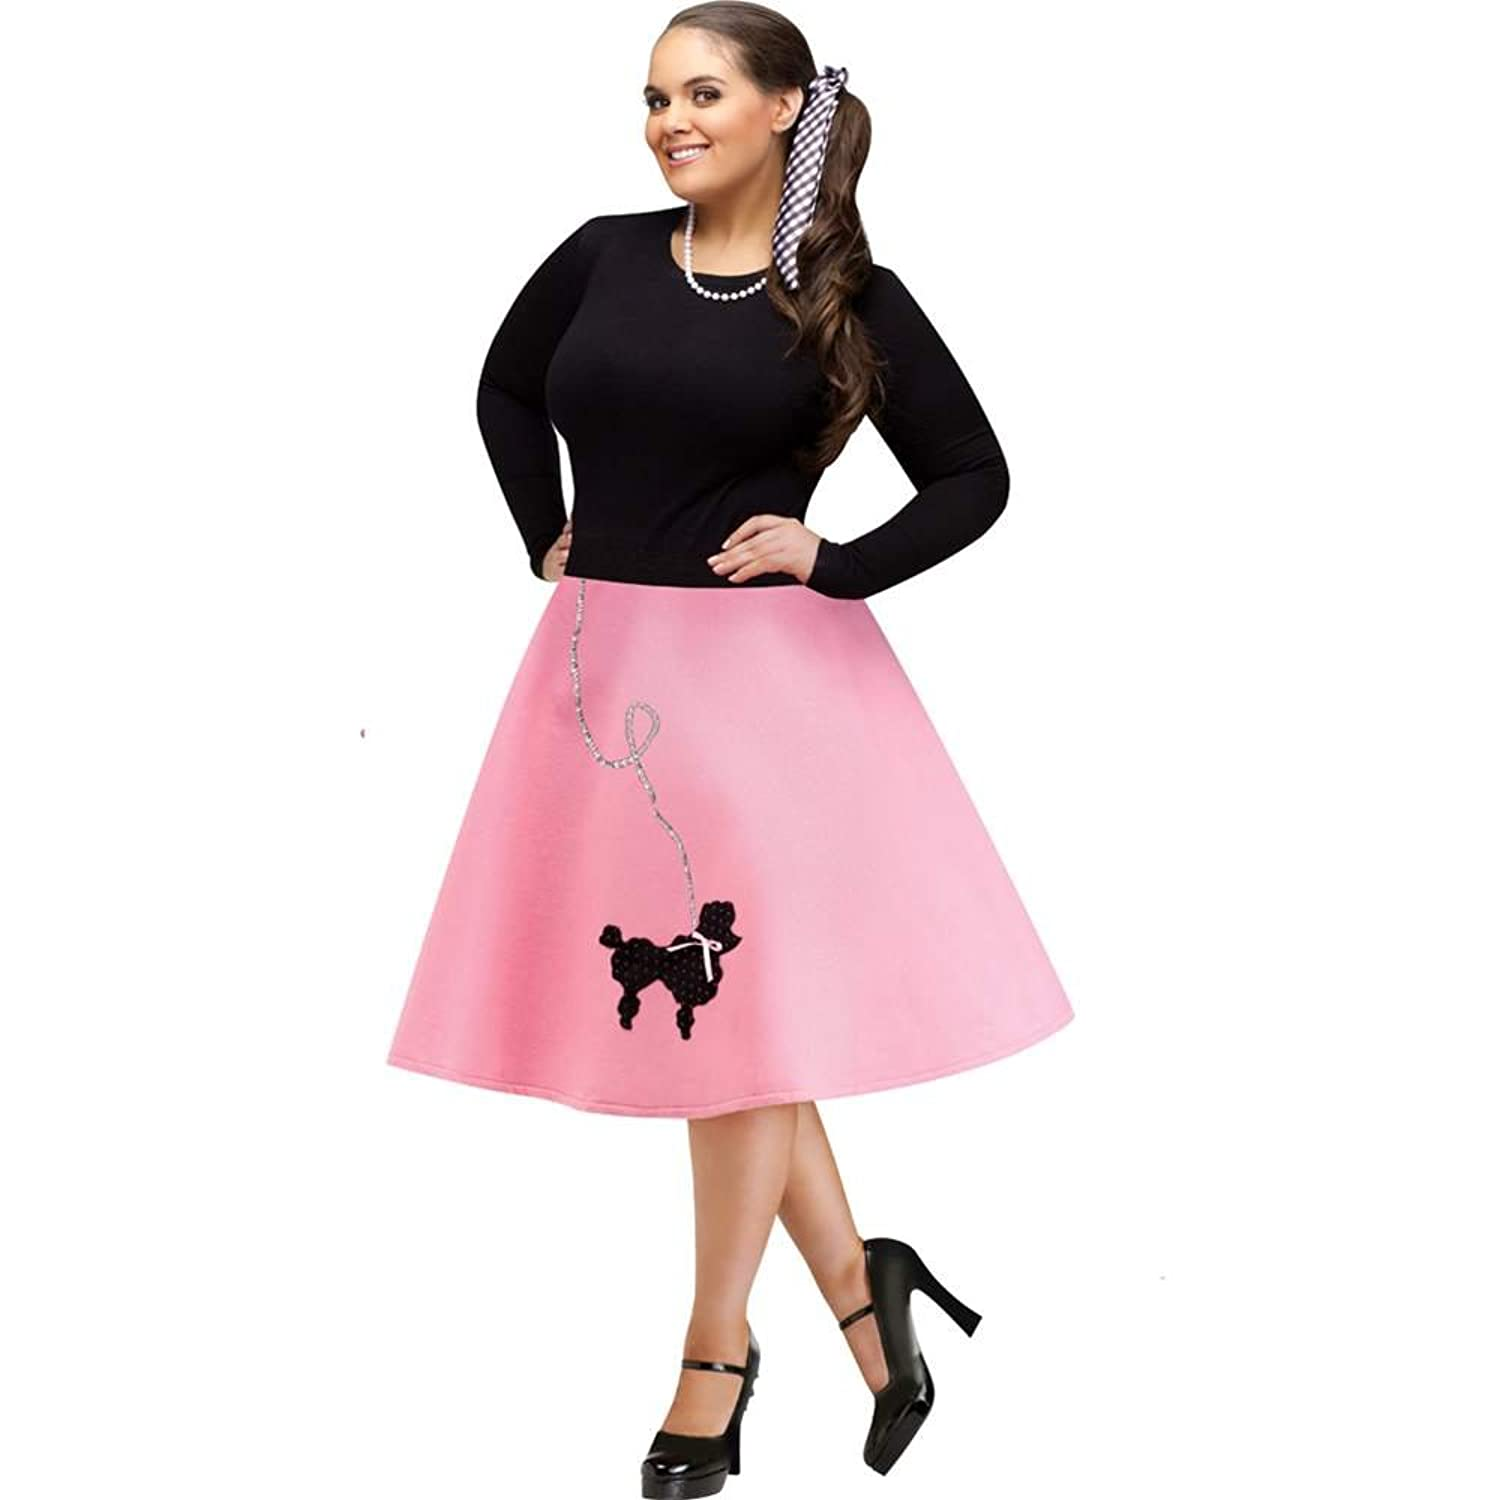 50s Skirt Styles | Poodle Skirts, Circle Skirts, Pencil Skirts 1950s FunWorld Plus-Size Poodle Skirt Costume $18.99 AT vintagedancer.com